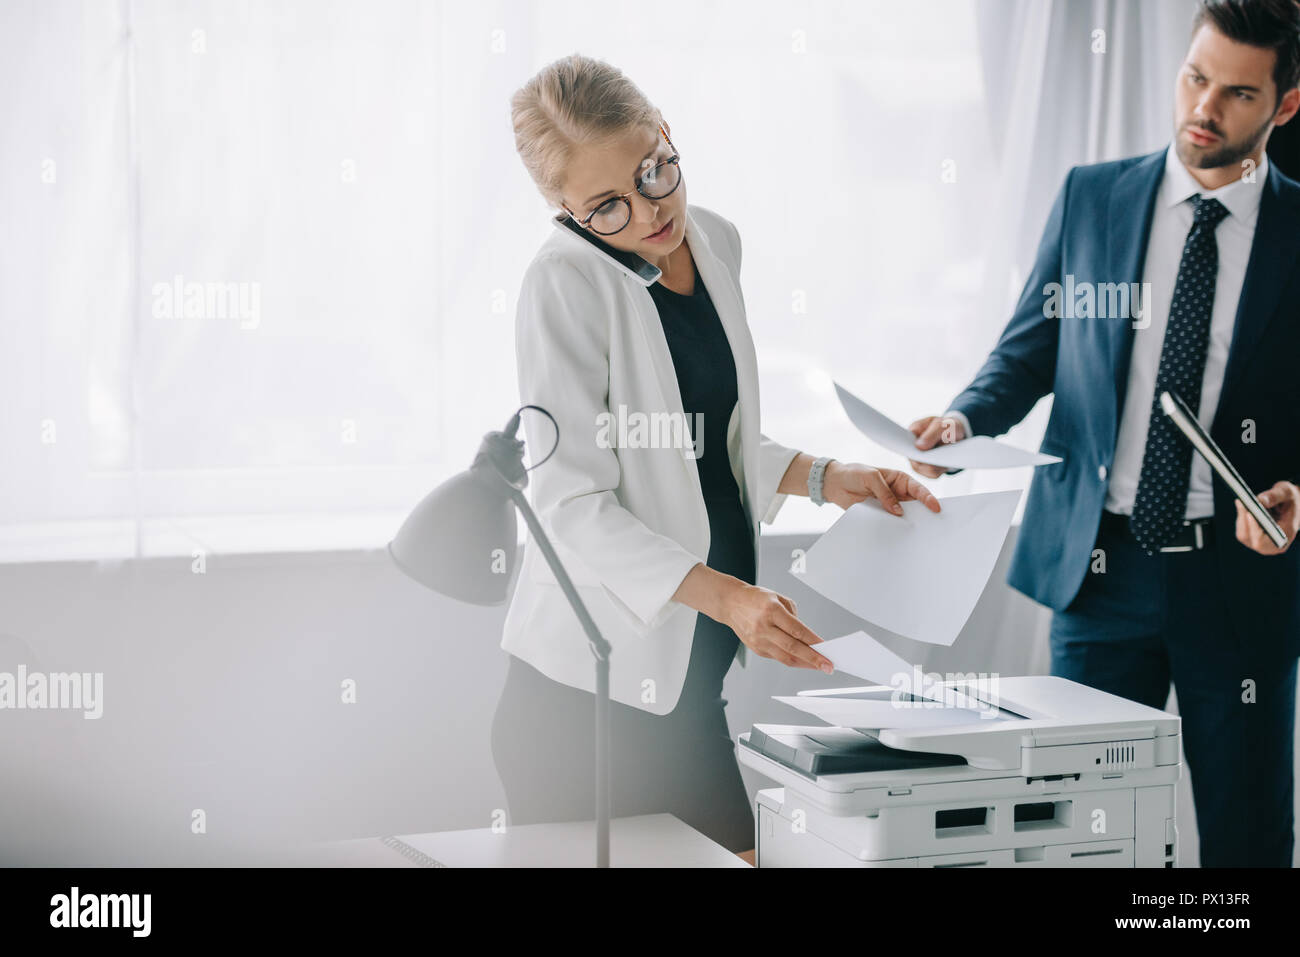 pregnant businesswoman talking on smartphone while using printer and businessman with papers standing behind in office Stock Photo